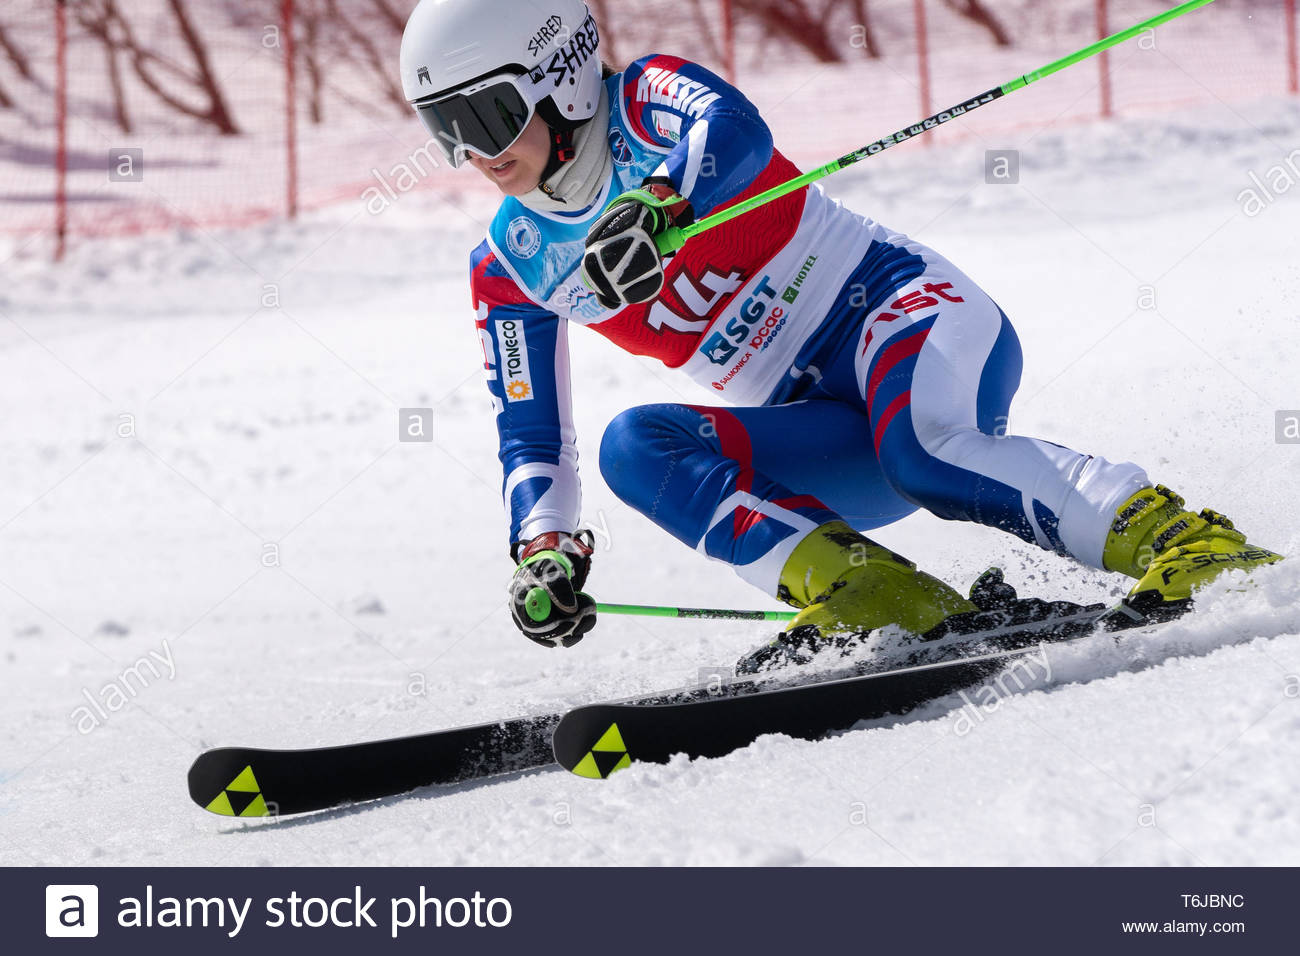 KAMCHATKA PENINSULA, RUSSIAN FEDERATION - APRIL 1, 2019: Mountain skier Darya Shustrova (St. Petersburg) skiing down snowy mountain slope. Russian Wom - Stock Image